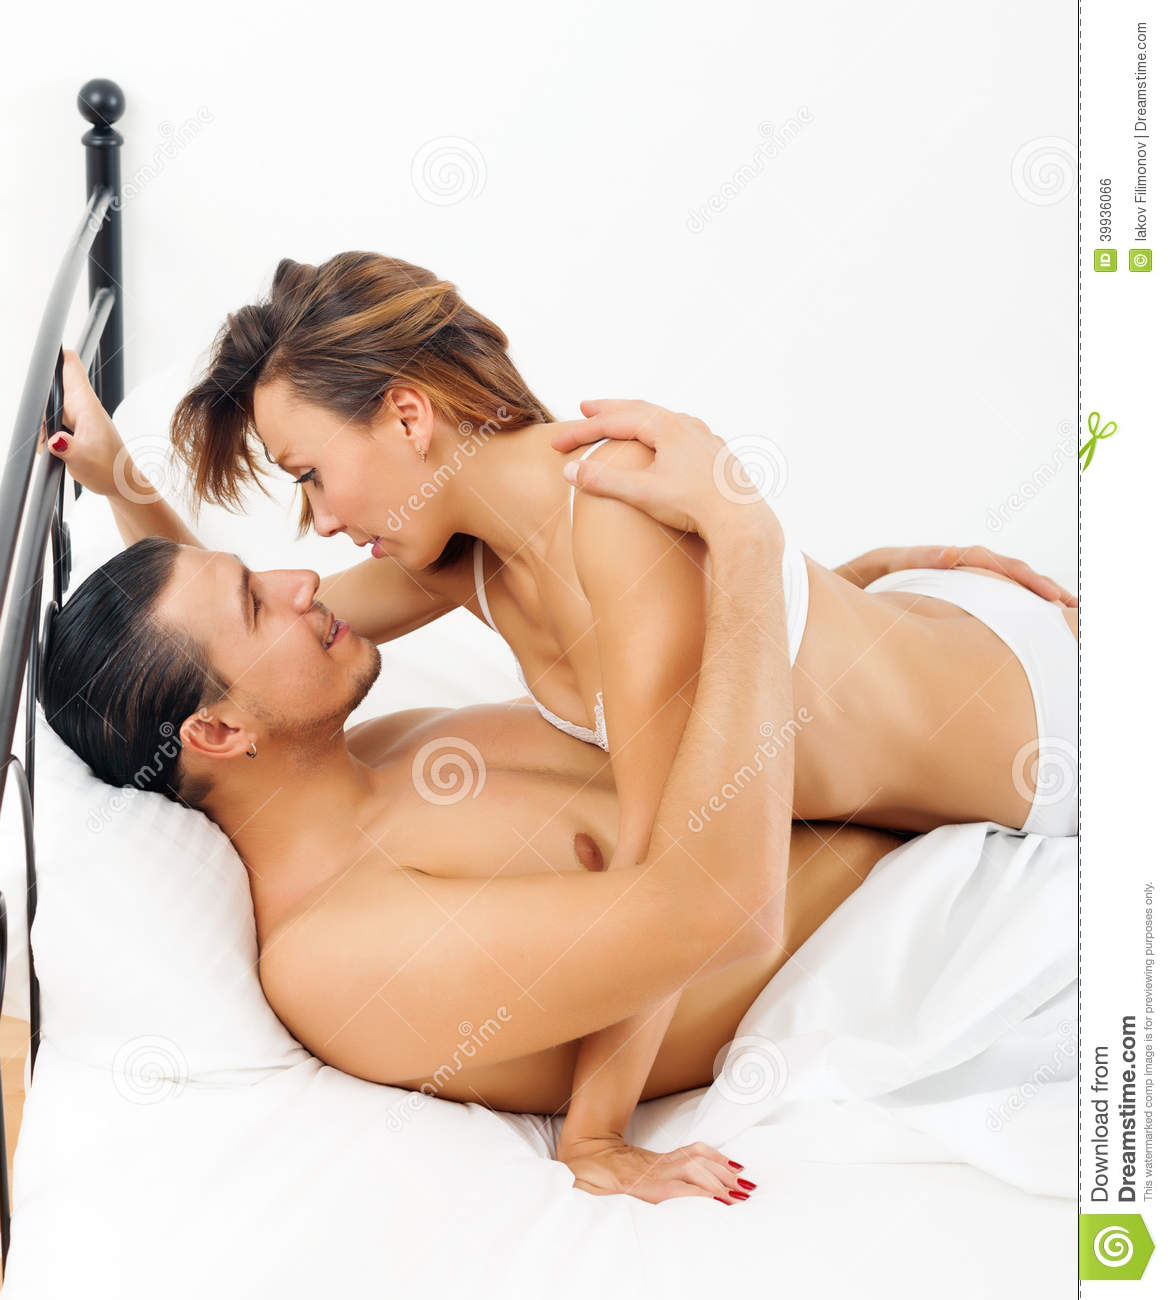 Handsome Guy Having Sex With Woman Stock Photo - Image -9206